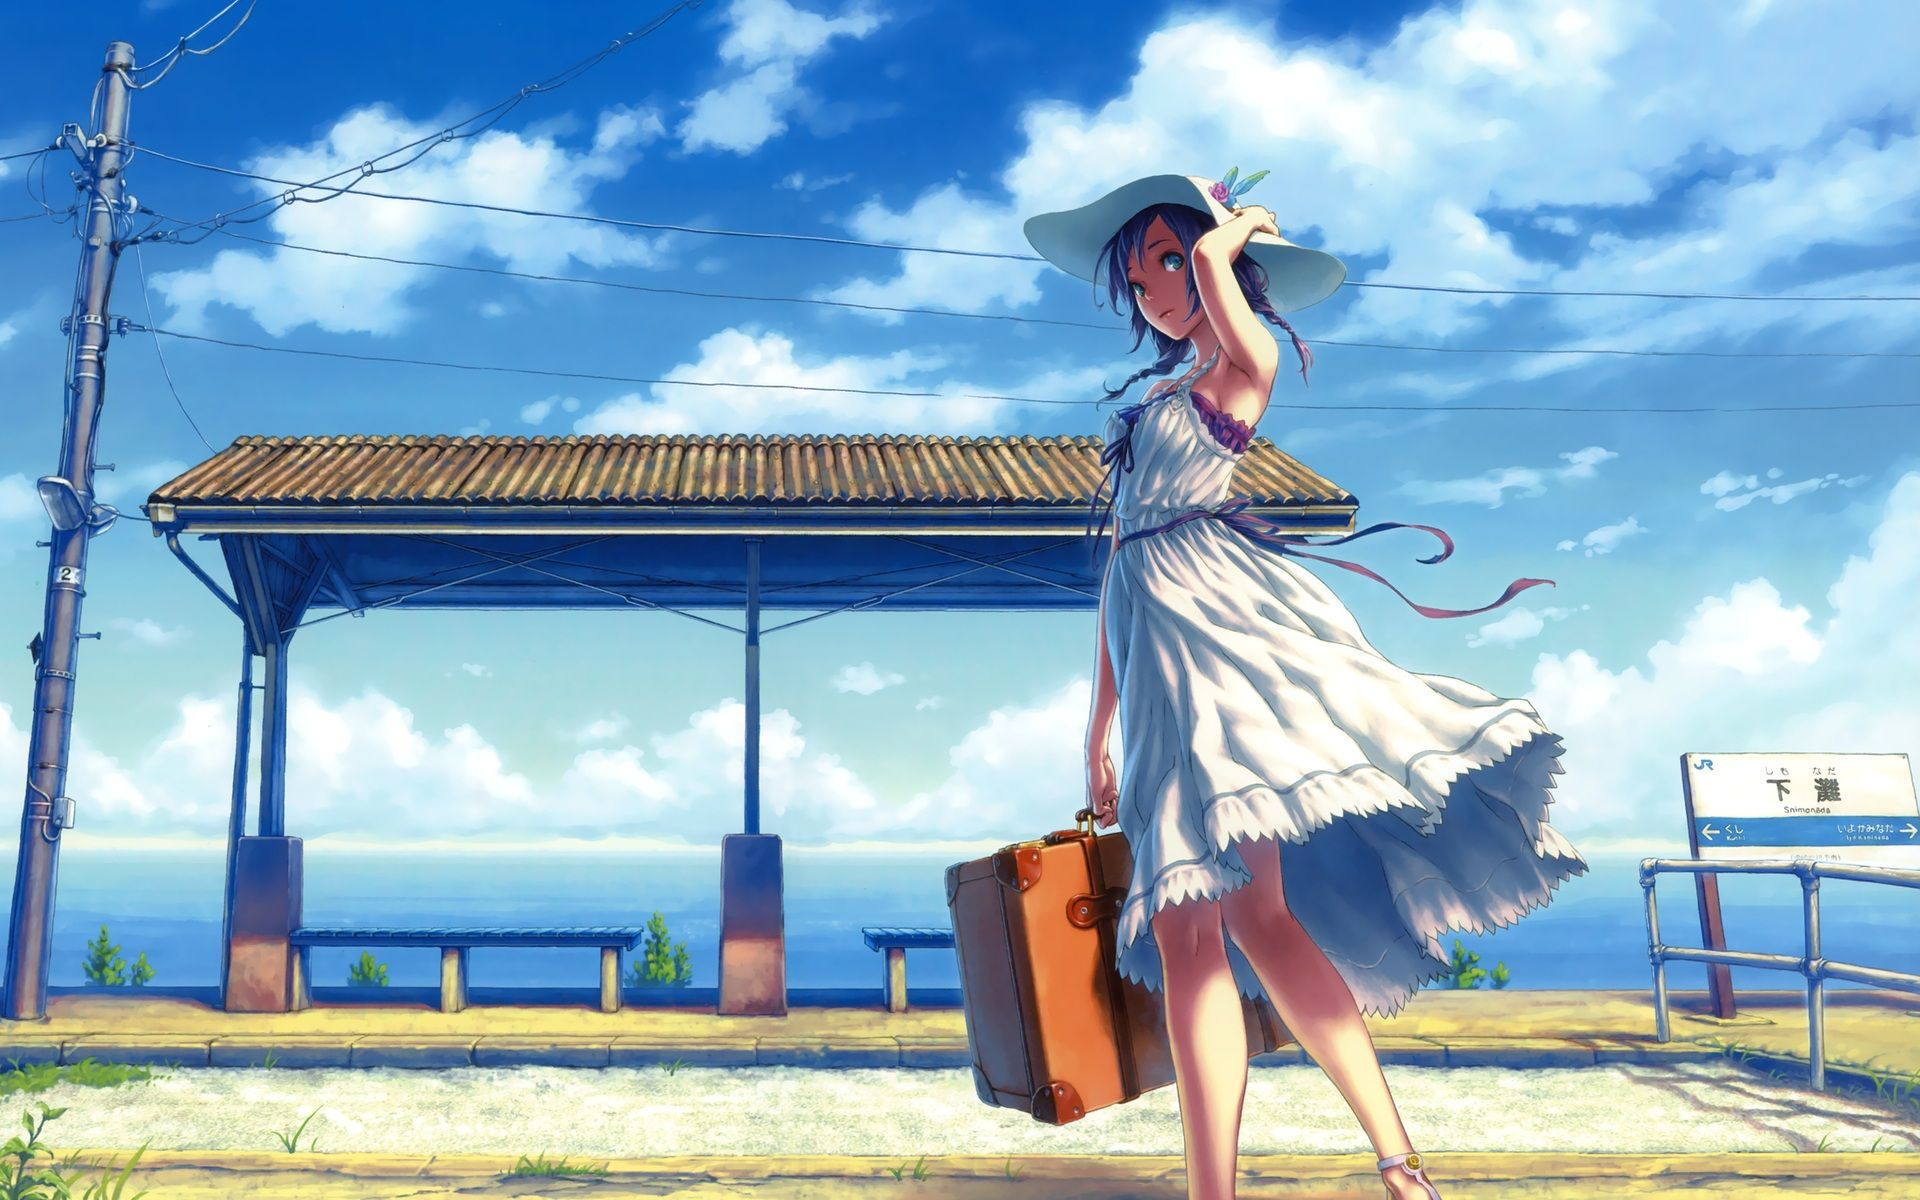 Anime Summer Wallpapers - Top Free Anime Summer ...